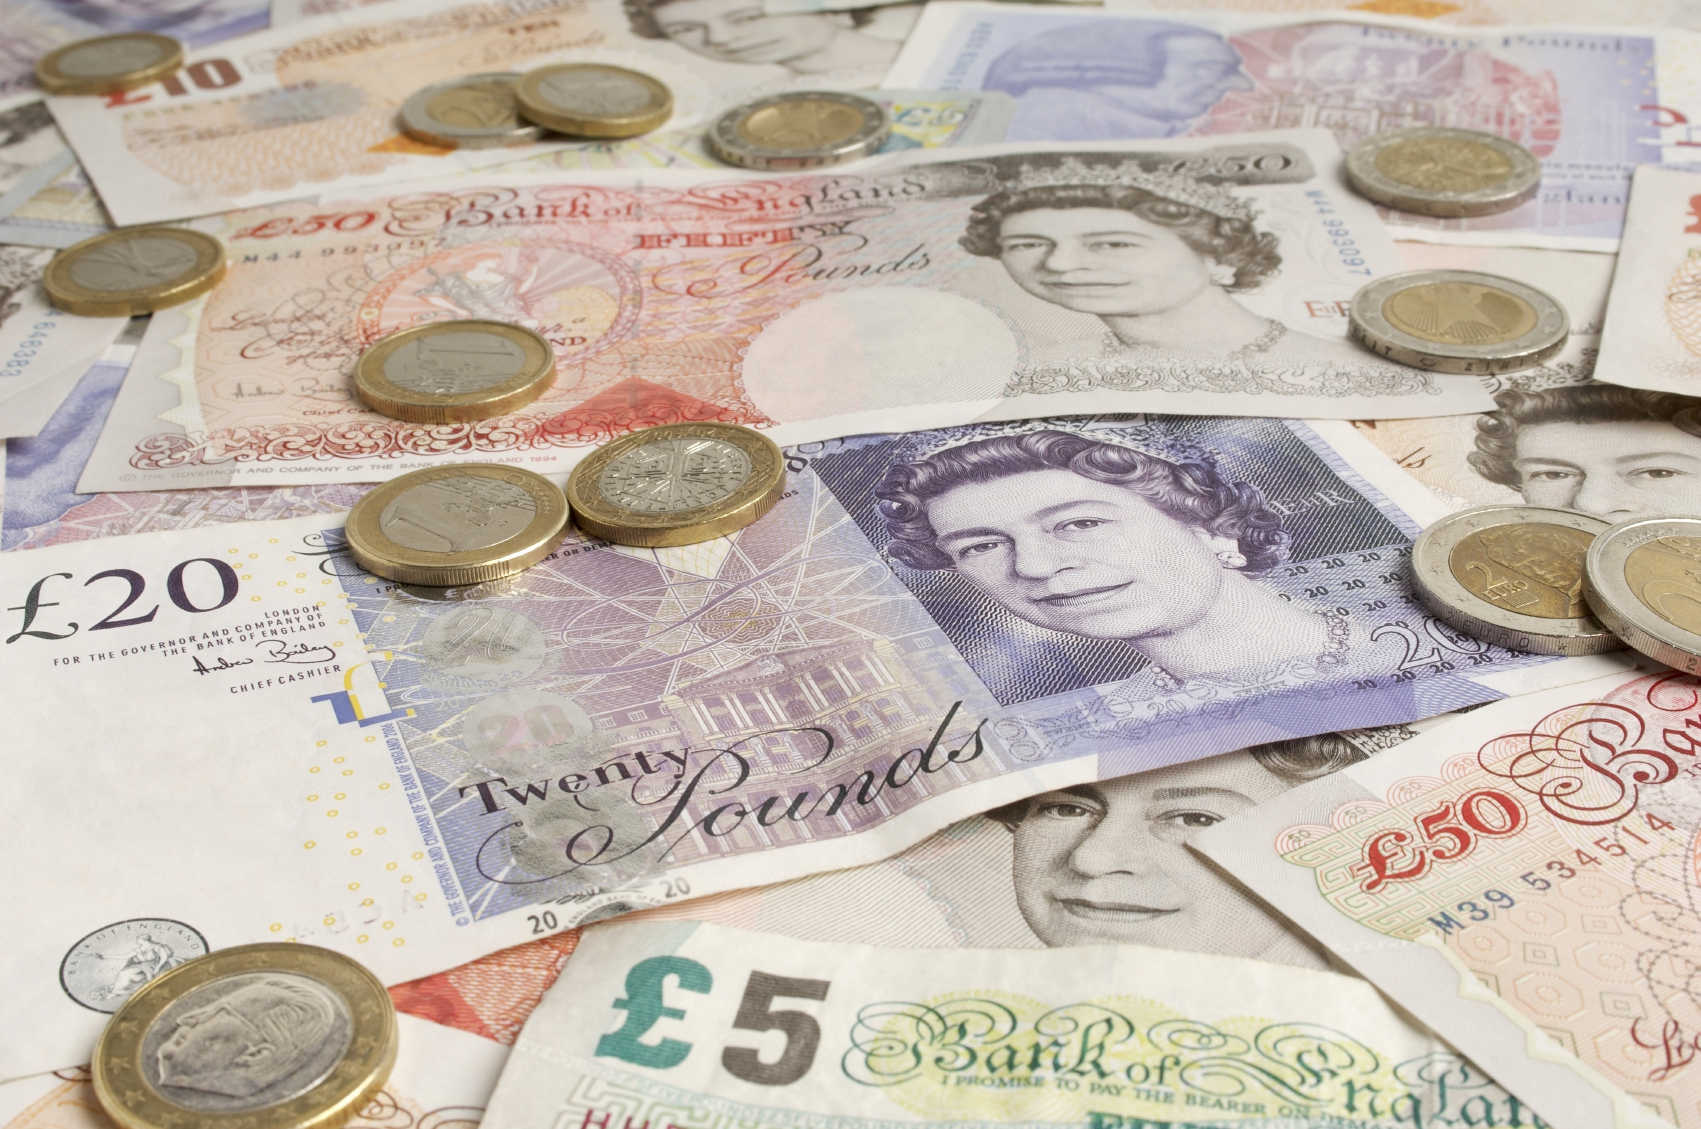 British paper currency and coins